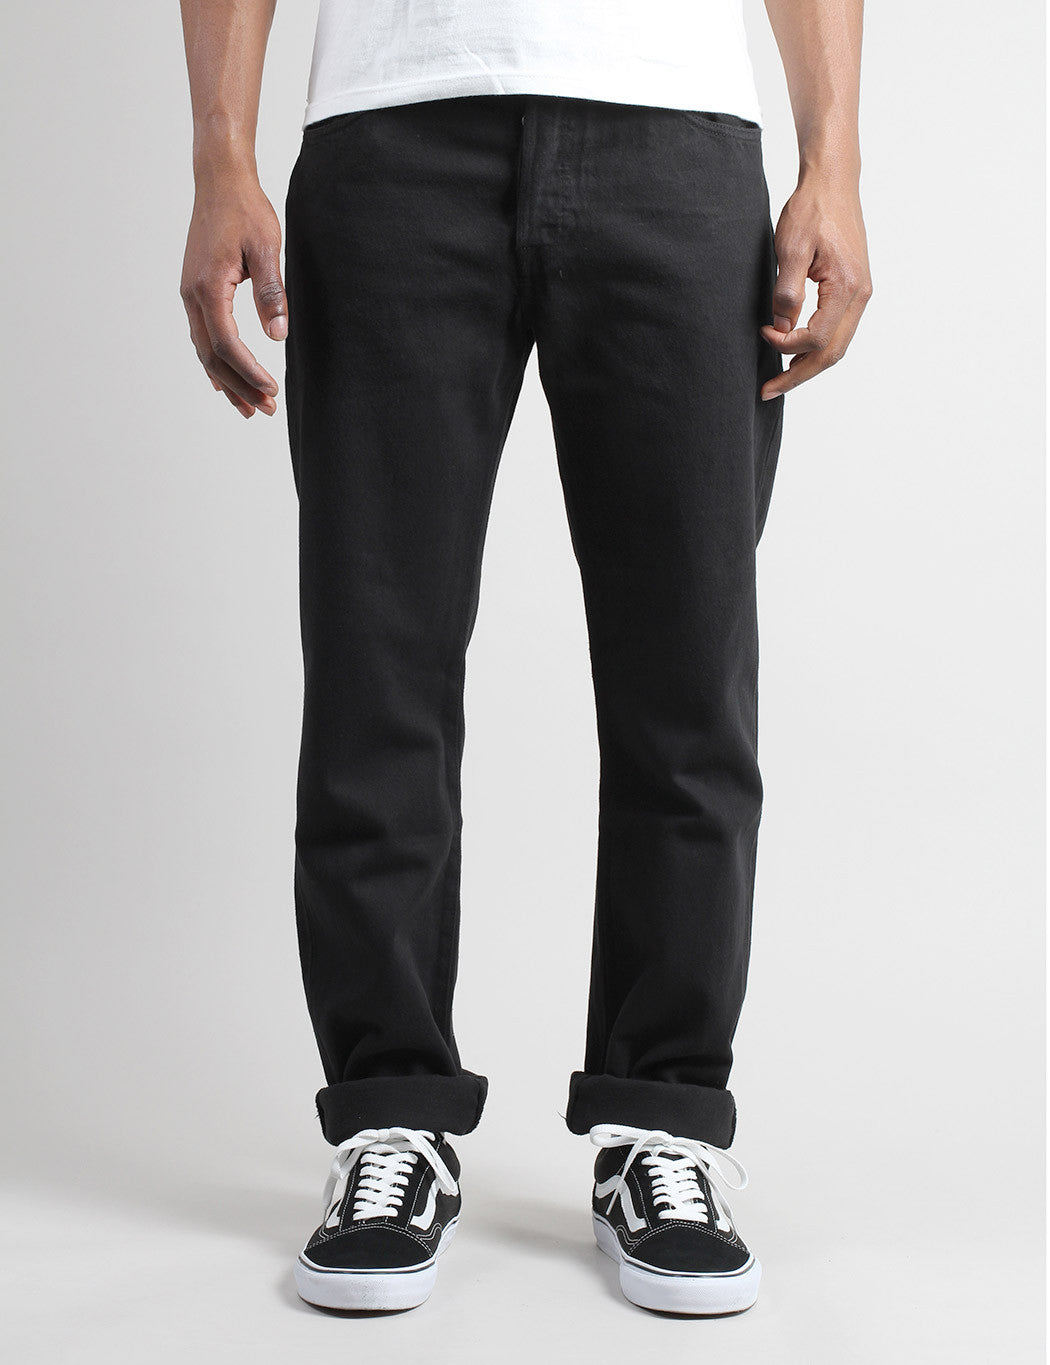 Levis 501 Original Fit Jeans - Black